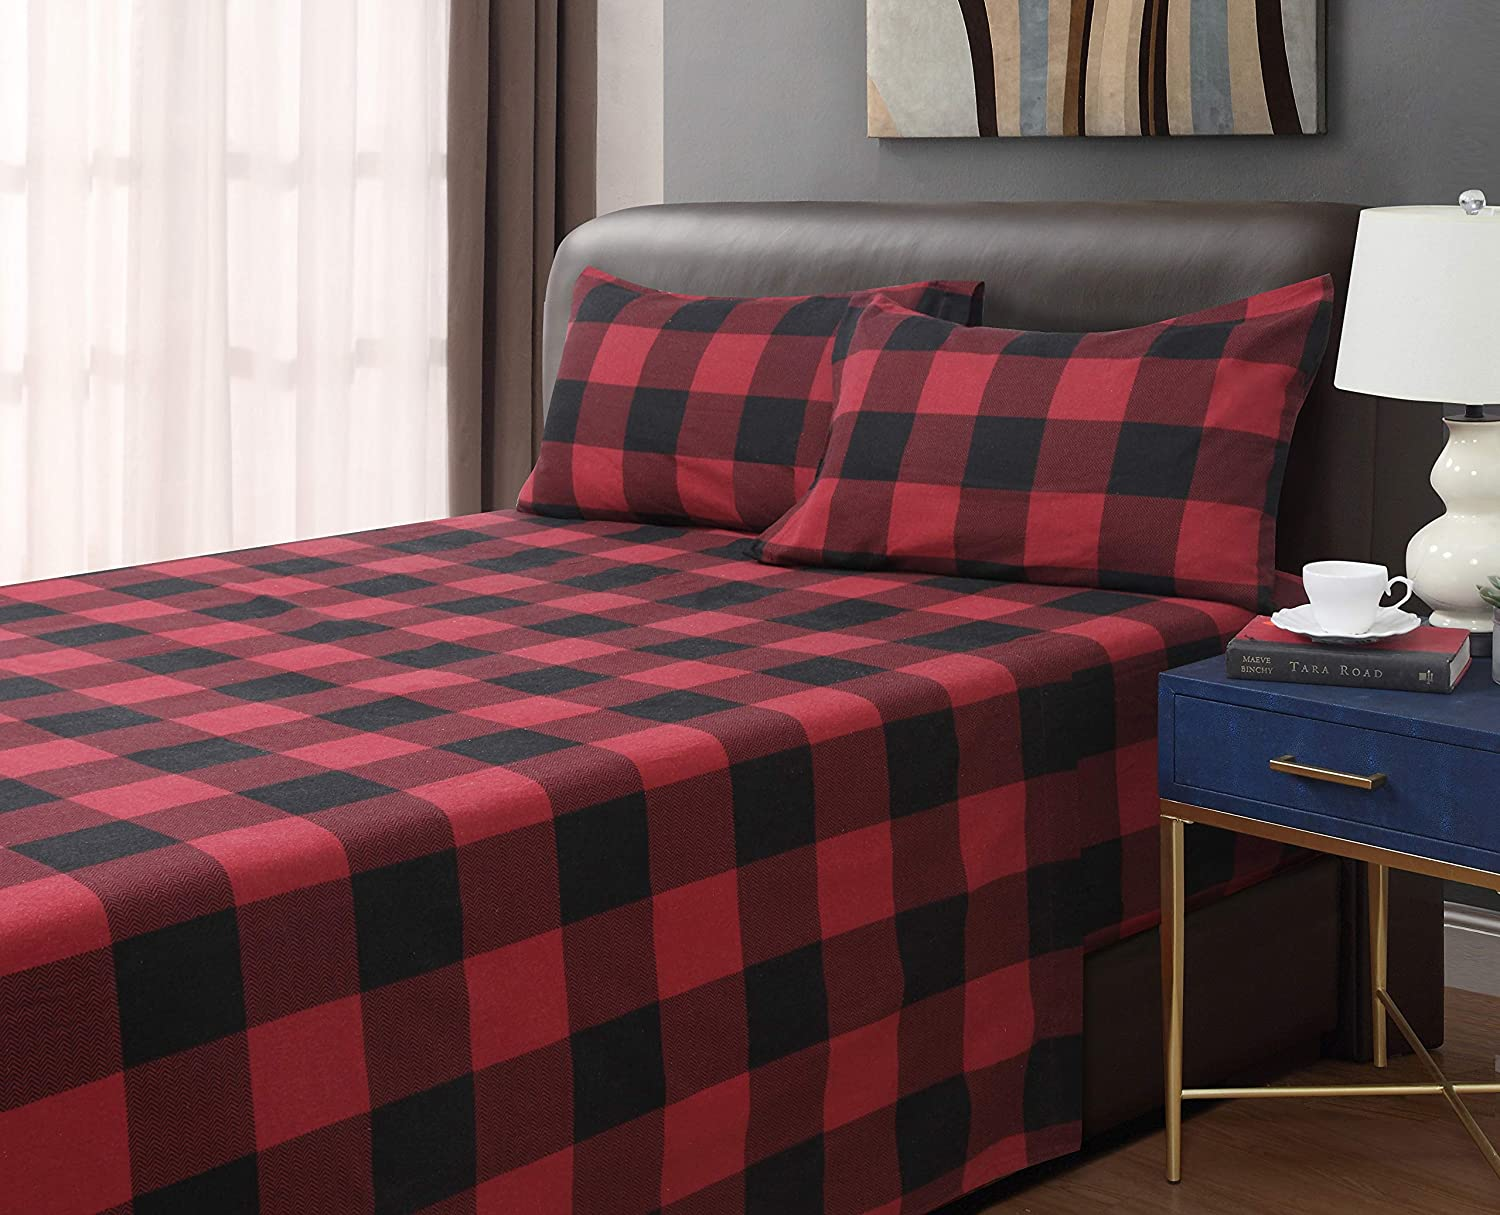 Universal Home Fashions Buffalo Plaid 4-Piece Flannel Sheet Set Queen Red/Black 60''x80''